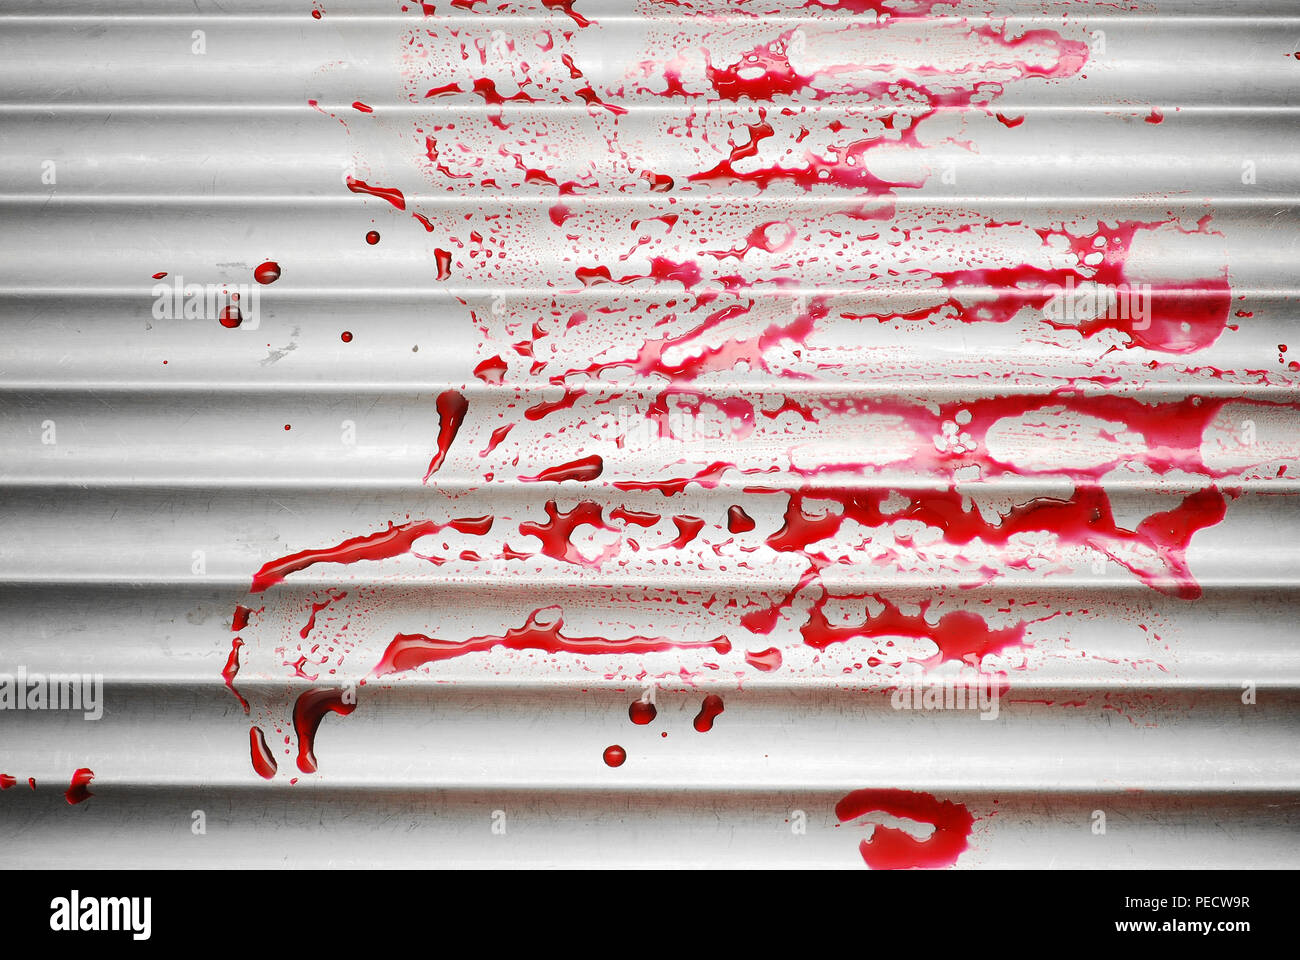 Blood Spots Over Metal Texture Stock Photo Alamy Download, share or upload your own one! https www alamy com blood spots over metal texture image215412899 html